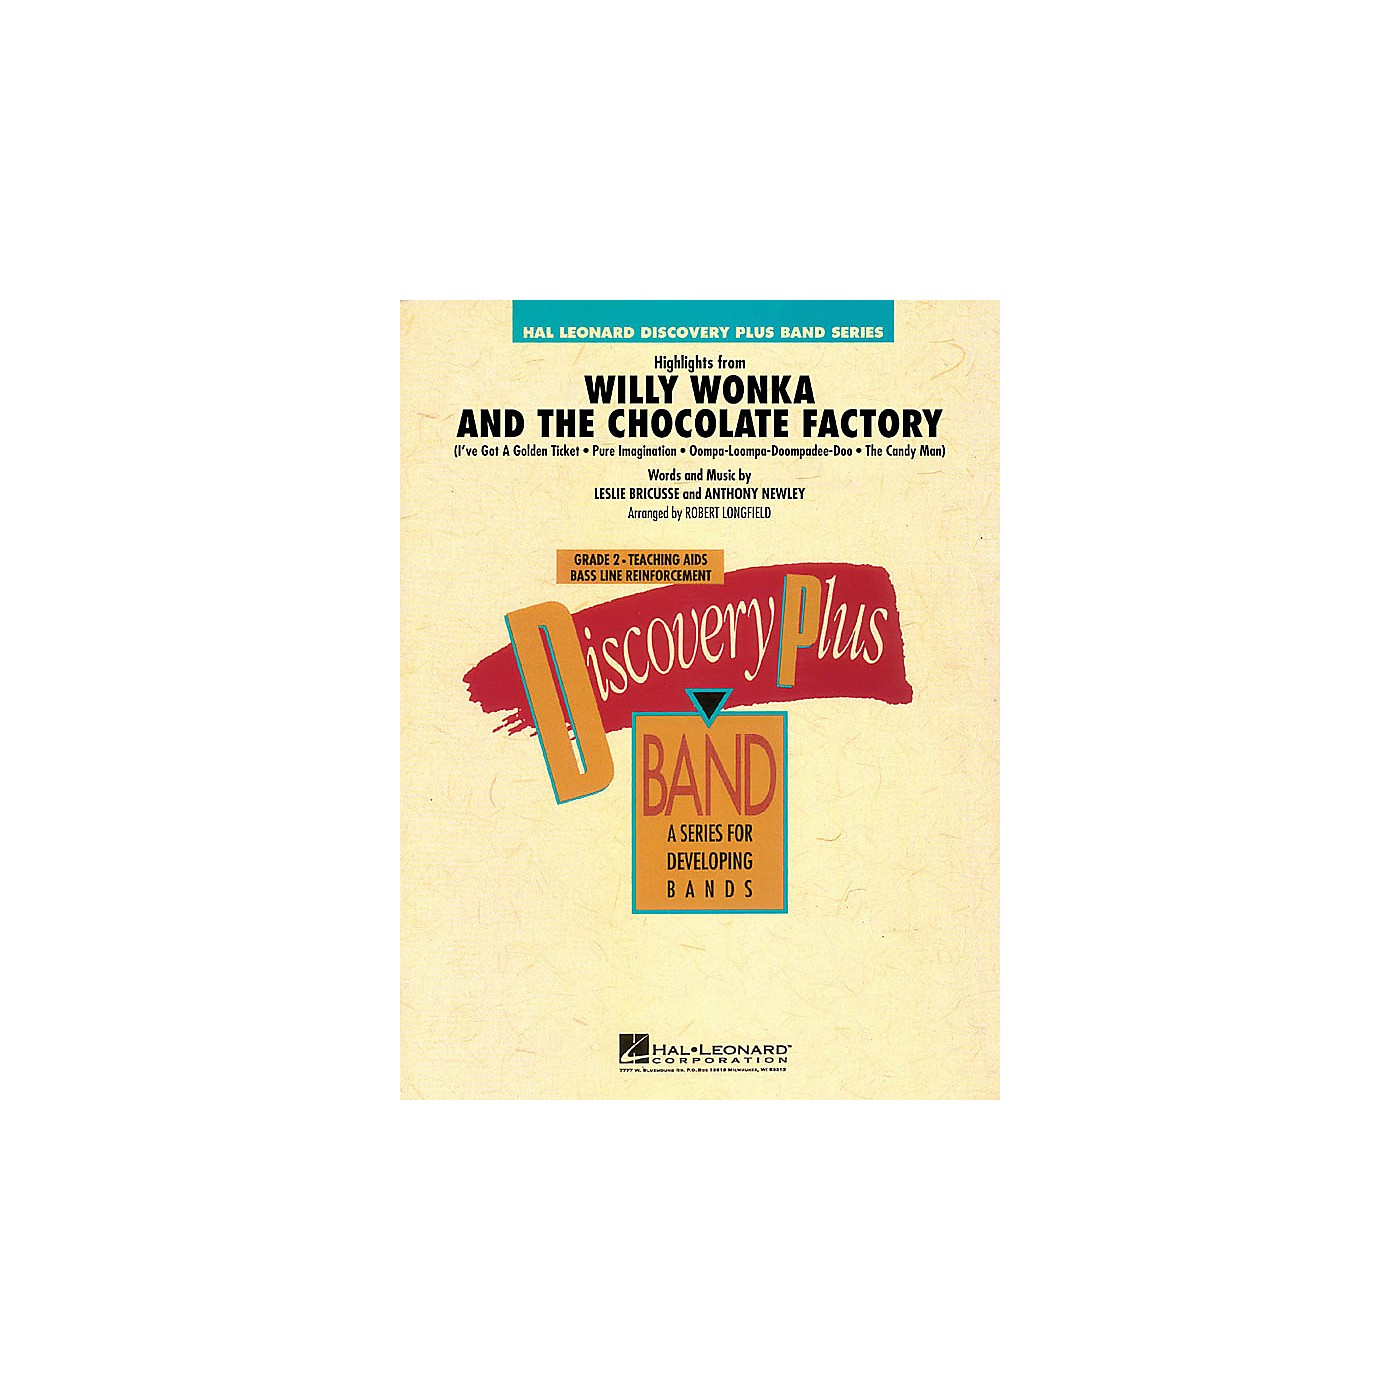 Hal Leonard Highlights from Willy Wonka & The Chocolate Factory - Discovery Plus Band Level 2 by Robert Longfield thumbnail